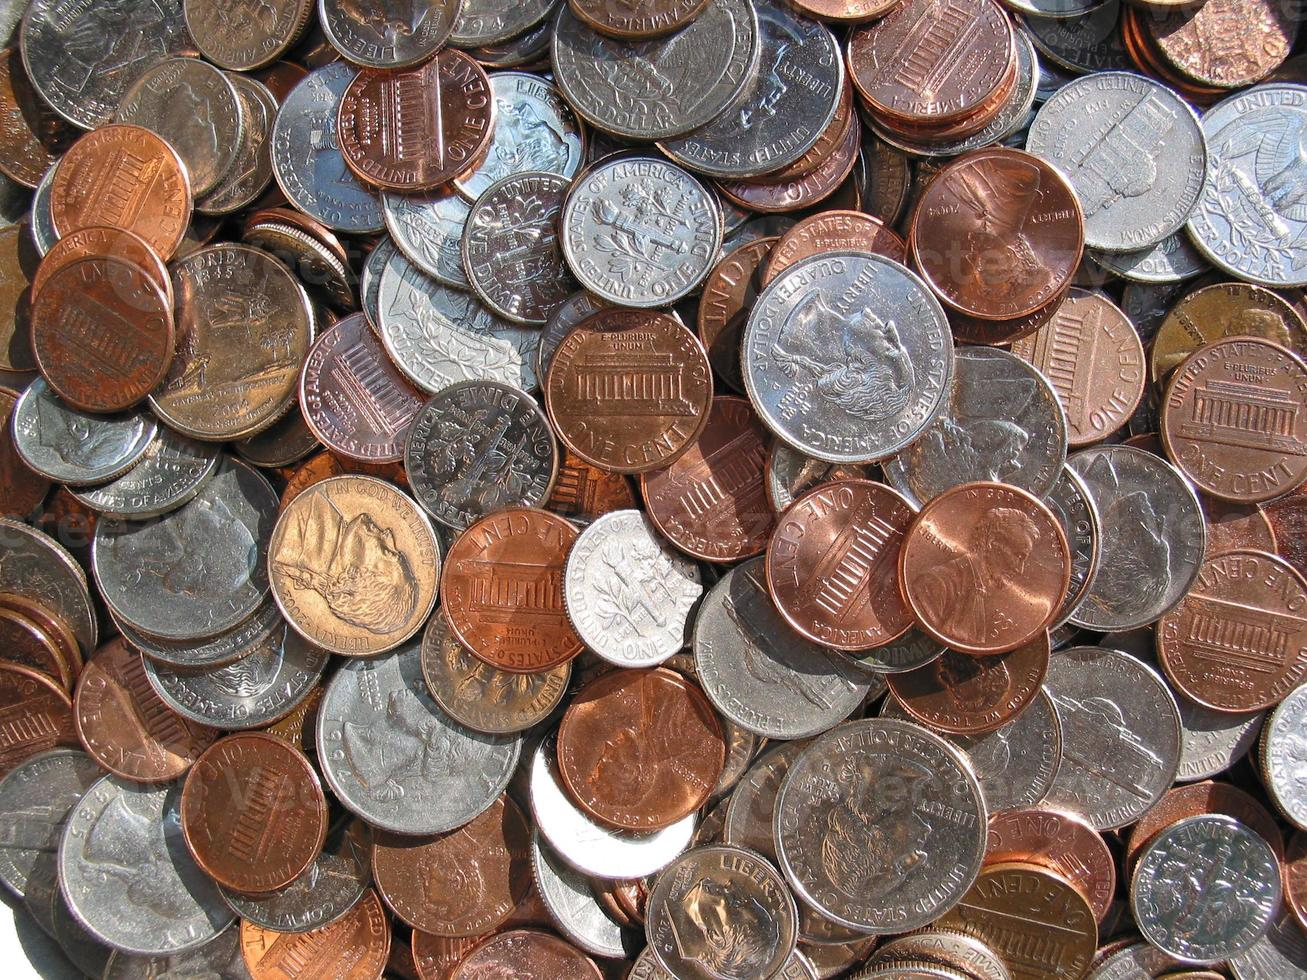 U.S. Coins - Pennies to Quarters photo